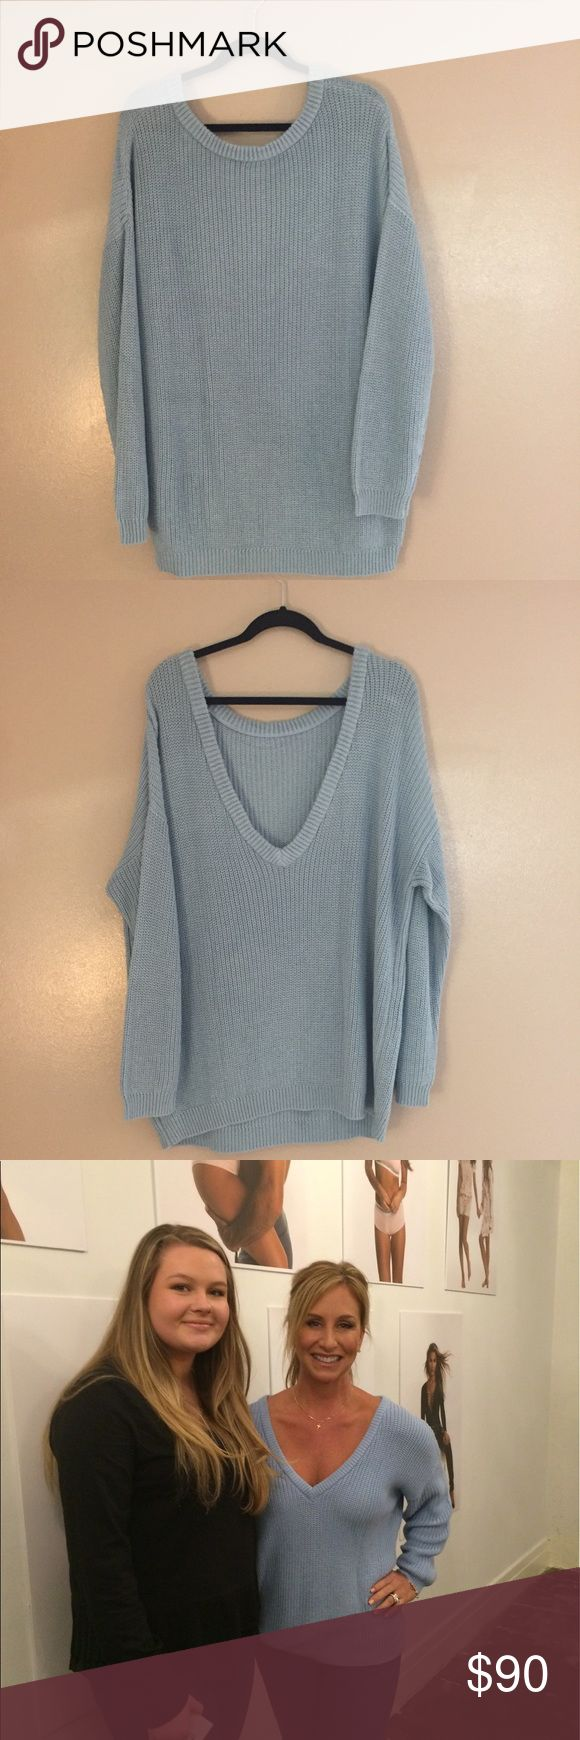 Kittenish By Jessie James Decker Gorgeous baby blue sweater that can be worn any time of year. Has a deep V, and you can be creative with this sweater by wearing it in the front and back. Sweater can be seen on Karen Parker (Jessie James Decker's mom!) Kittenish by Jessie James Decker Sweaters V-Necks